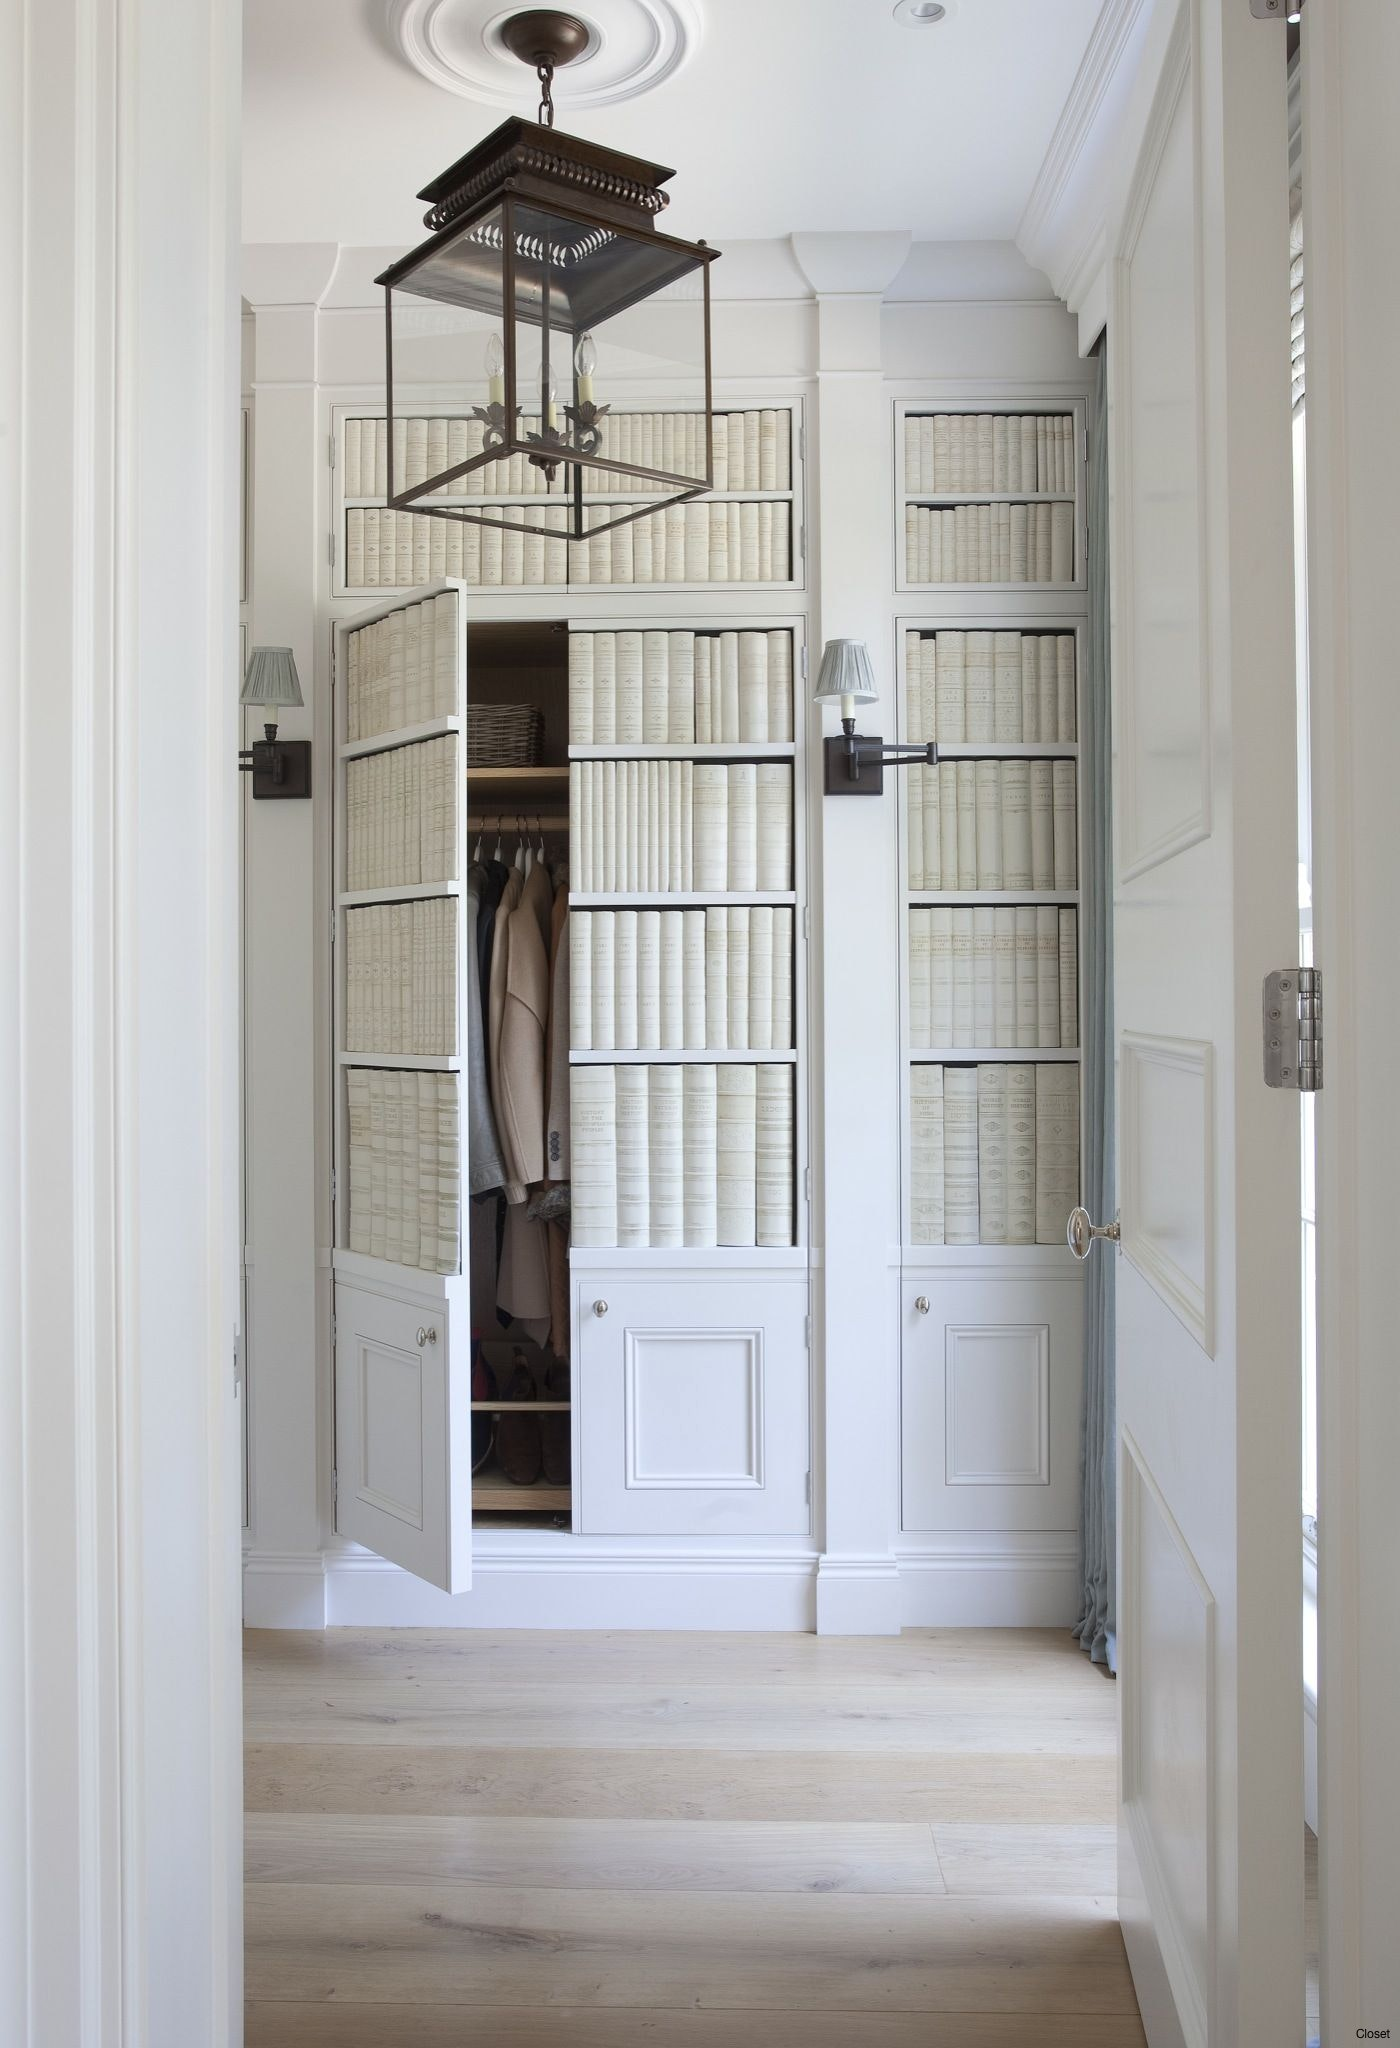 Hidden doors \u0026 secret rooms-the house feature that never goes out of style ( & The Ideal House Design: Hidden Doors \u0026 Secret Rooms | Live Simply by ...